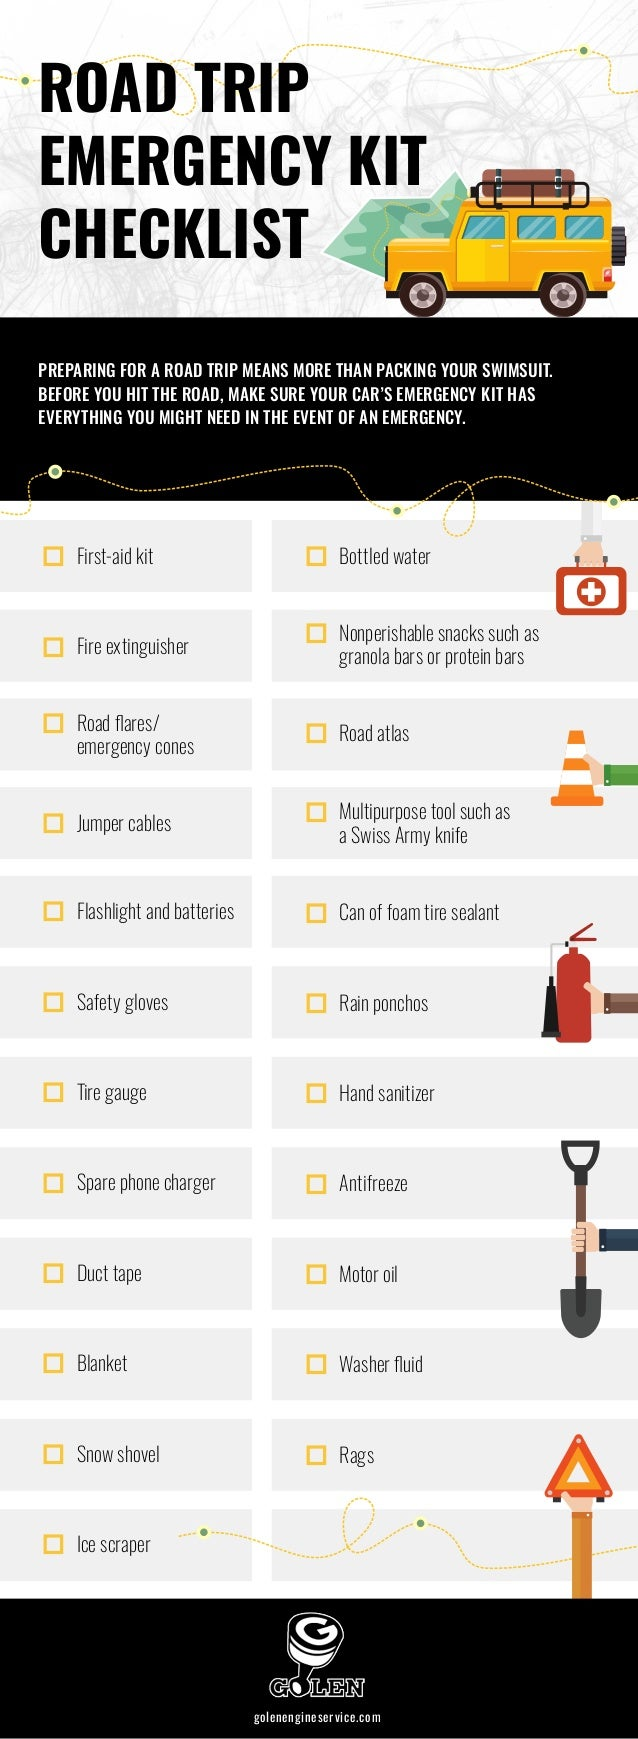 ▫▫First-aid kit ▫▫Fire extinguisher ▫▫Road flares/  emergency cones ▫▫Jumper cables ▫▫Flashlight and batteries ▫▫Safety g...